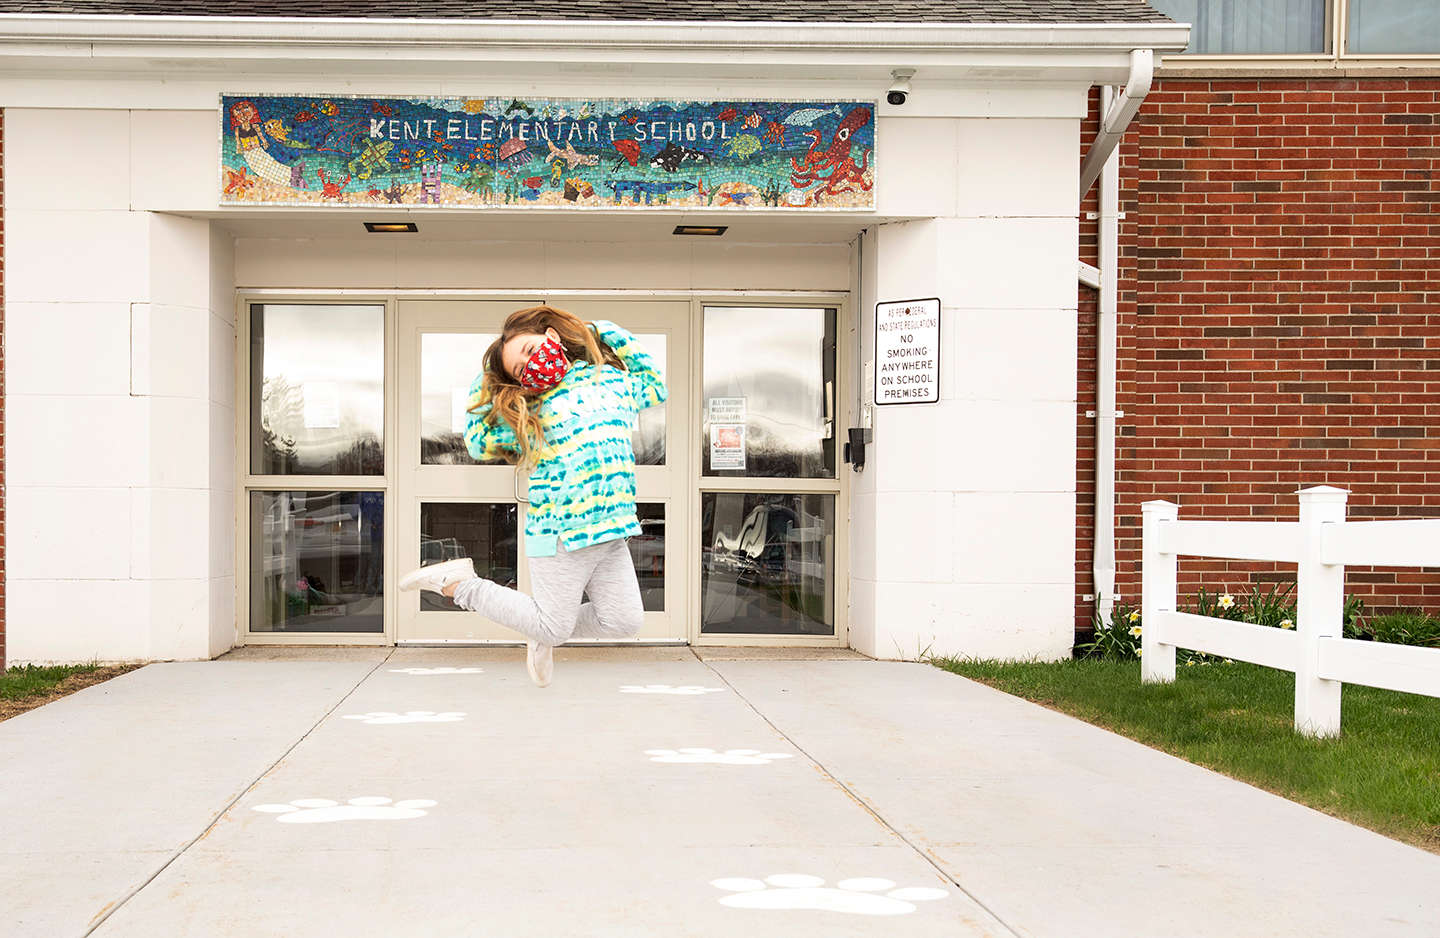 Student jumping in front of school entrance